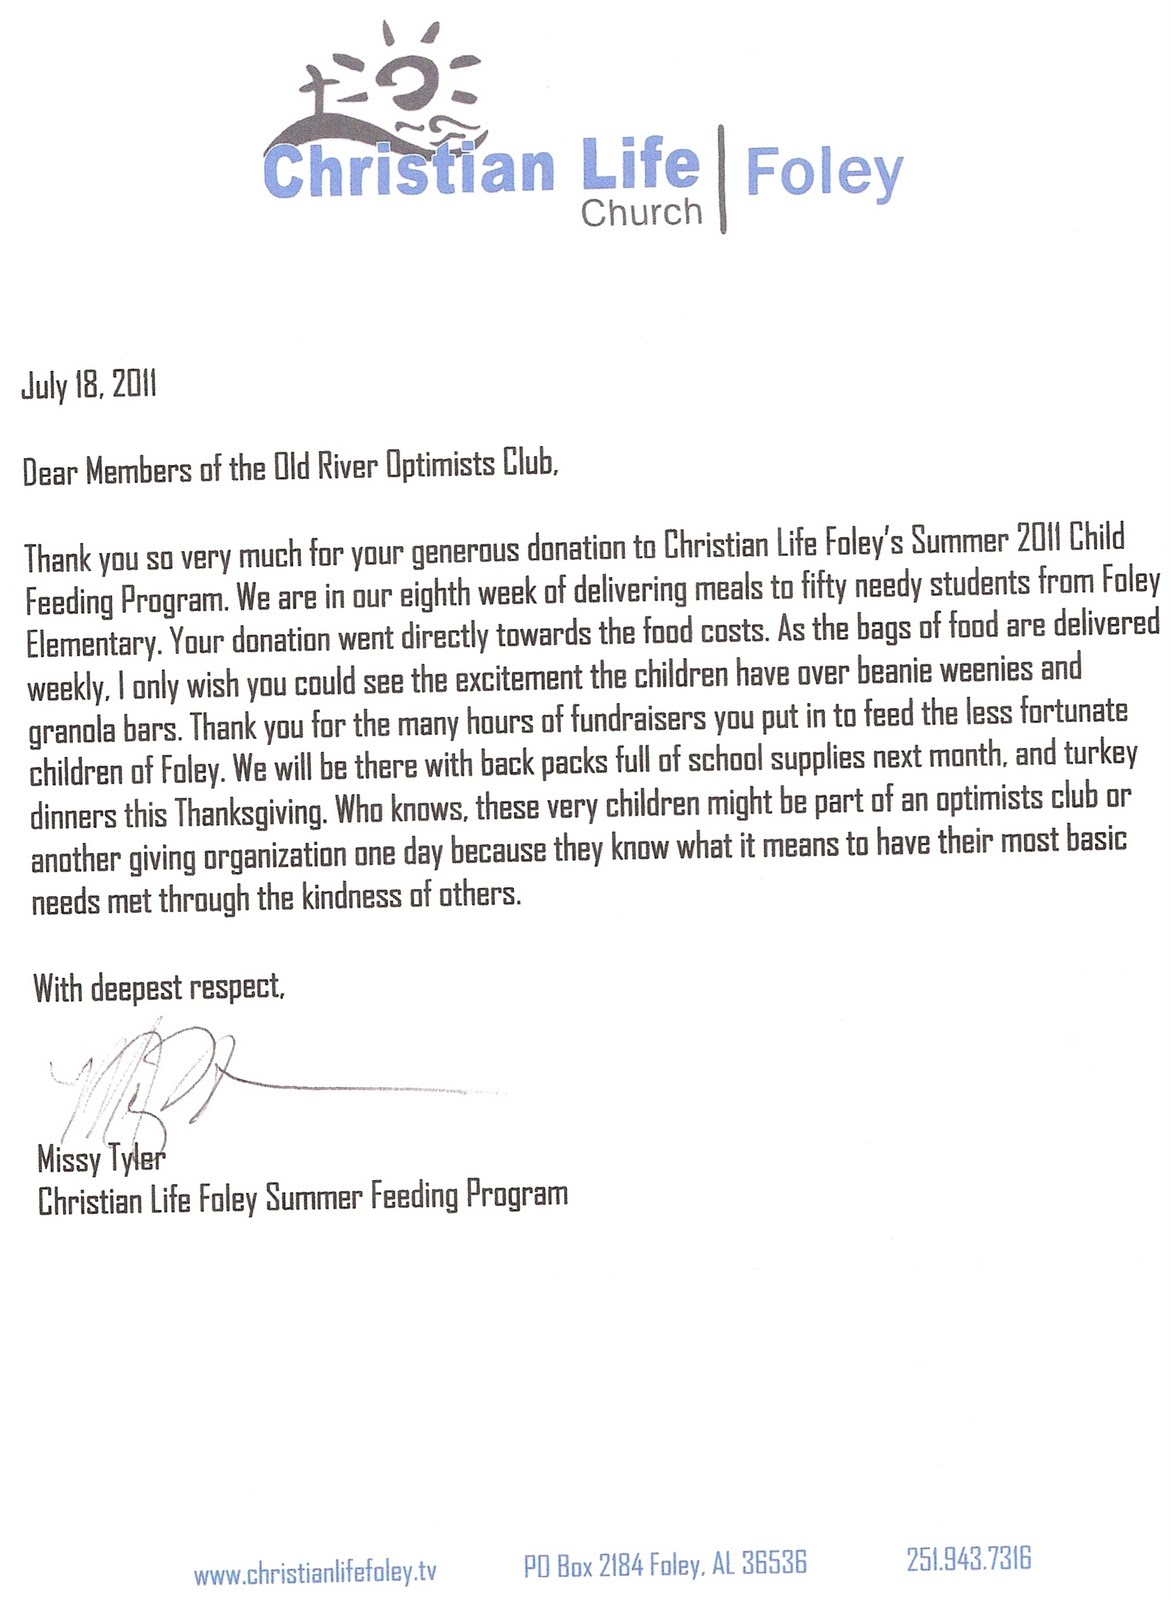 Old River Optimist Club: Thank You Letter from Christian Life Church